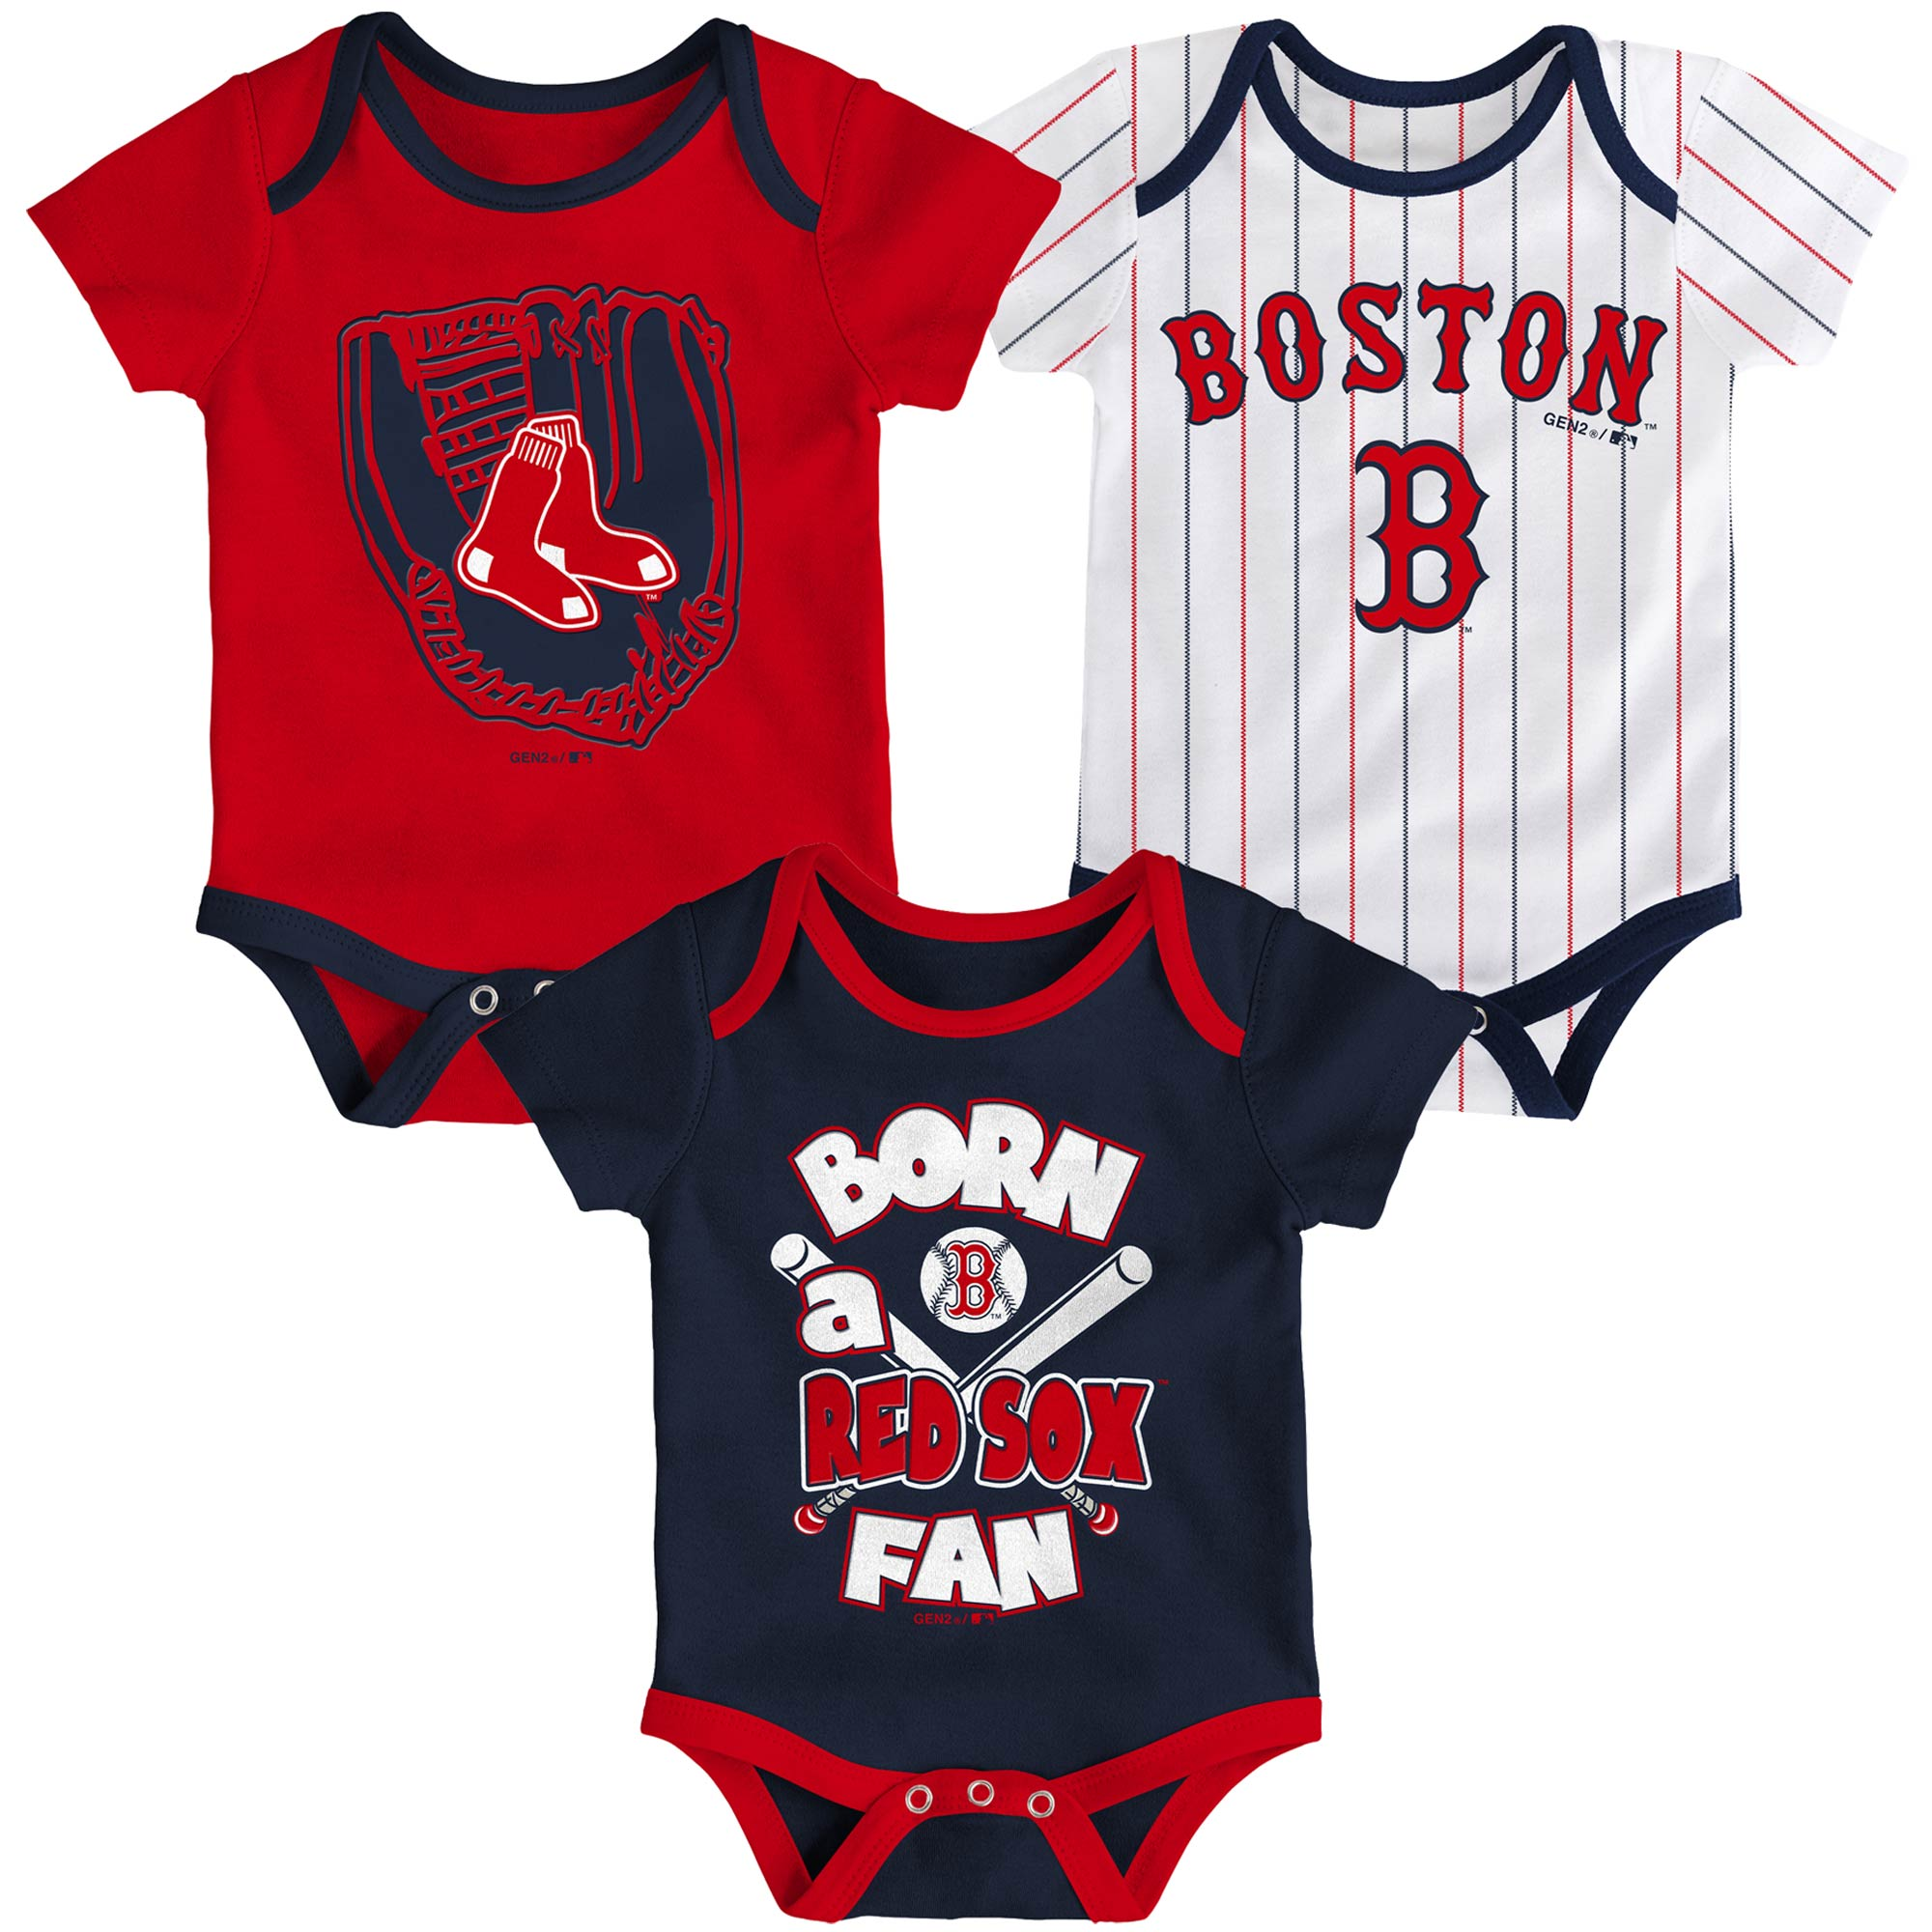 Boston Red Sox Newborn & Infant Future Number One 3-Pack Bodysuit Set - Navy/Red/White